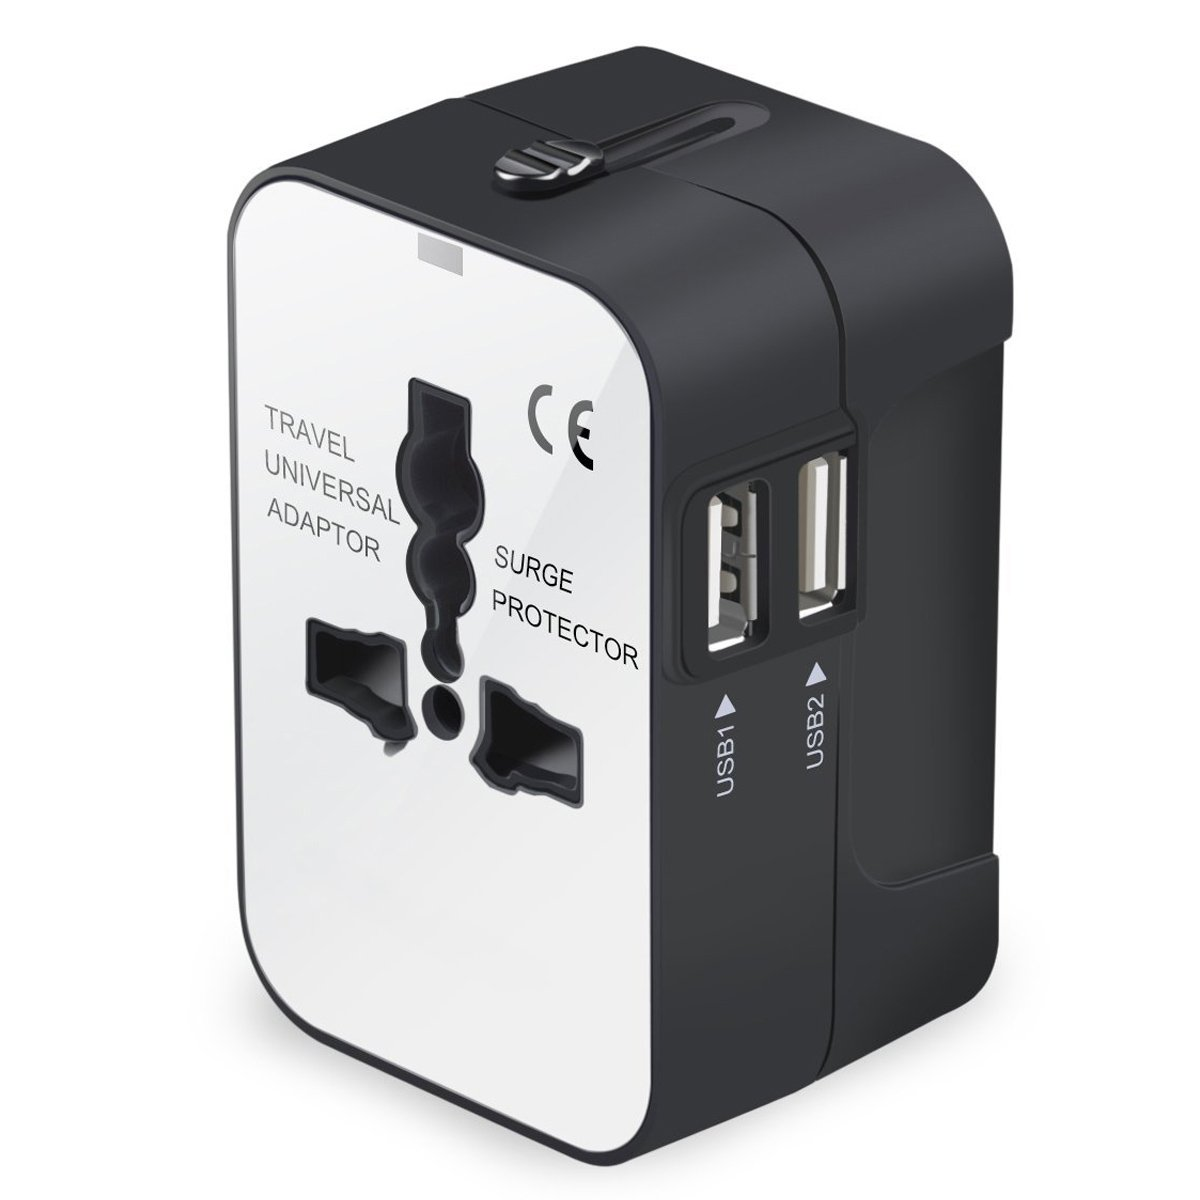 Travel Adapter, Universal International All-in-One Worldwide Travel Adaptor Wall Charger AC Power Plug Adapter Charger with Dual USB Port for USA UK EU AUS MINGTONG 4326543656